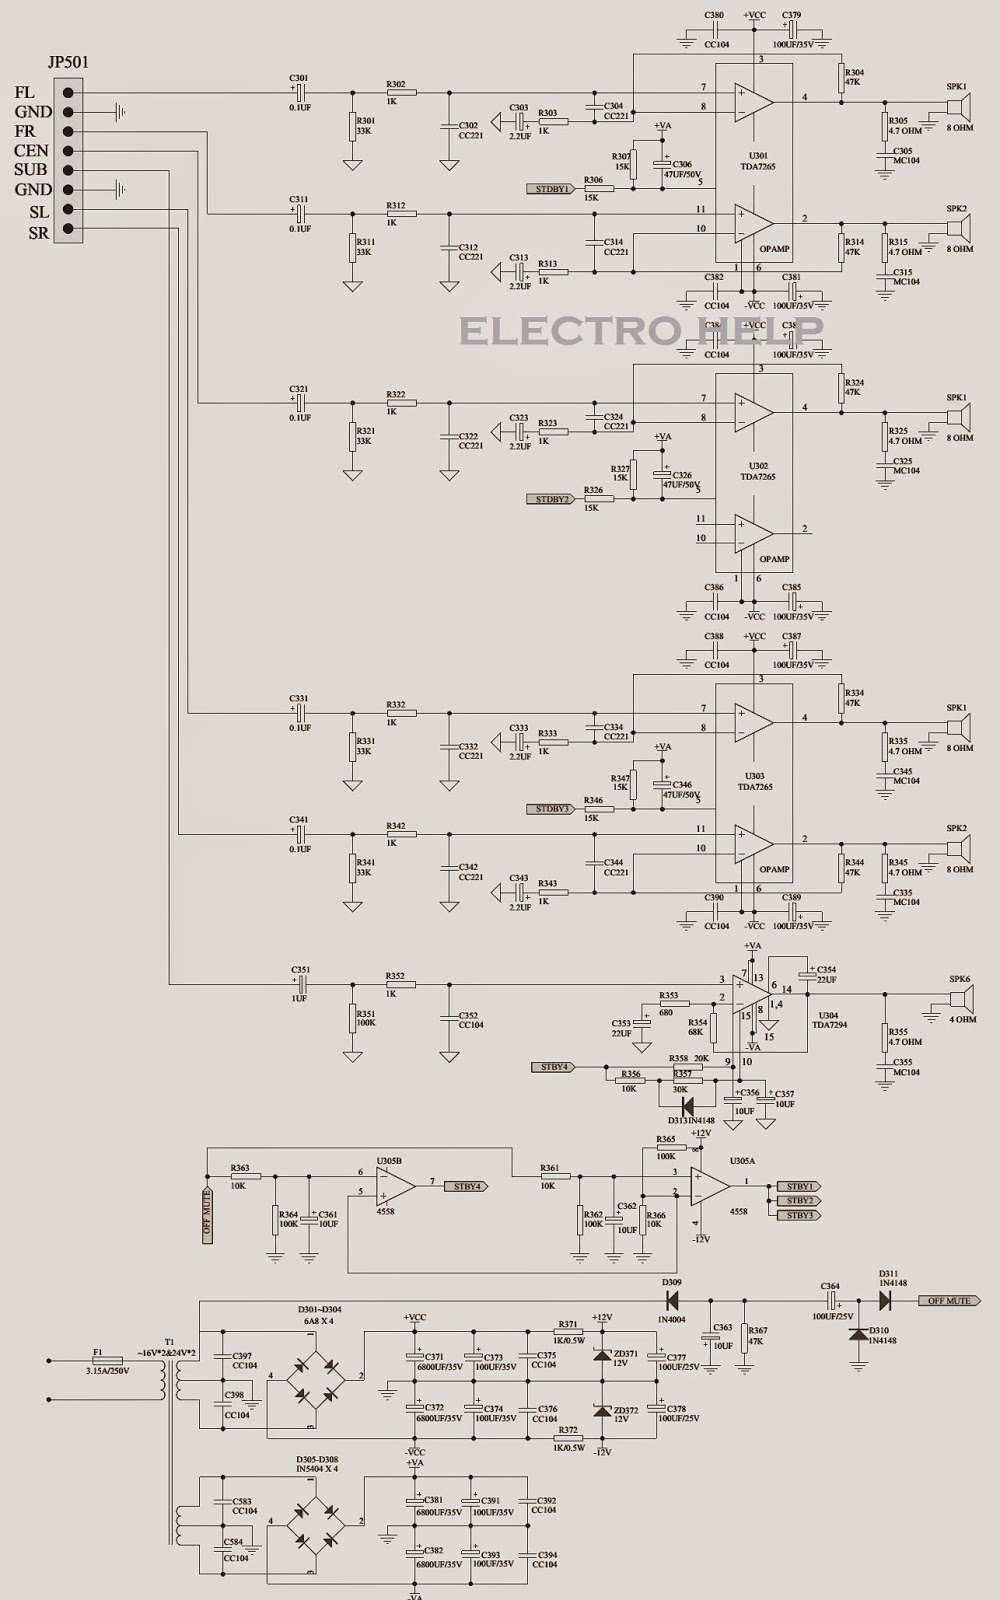 altec lansing vs2521 micorlab x25d x27d h500d 600d microlab click on the schematics to magnify